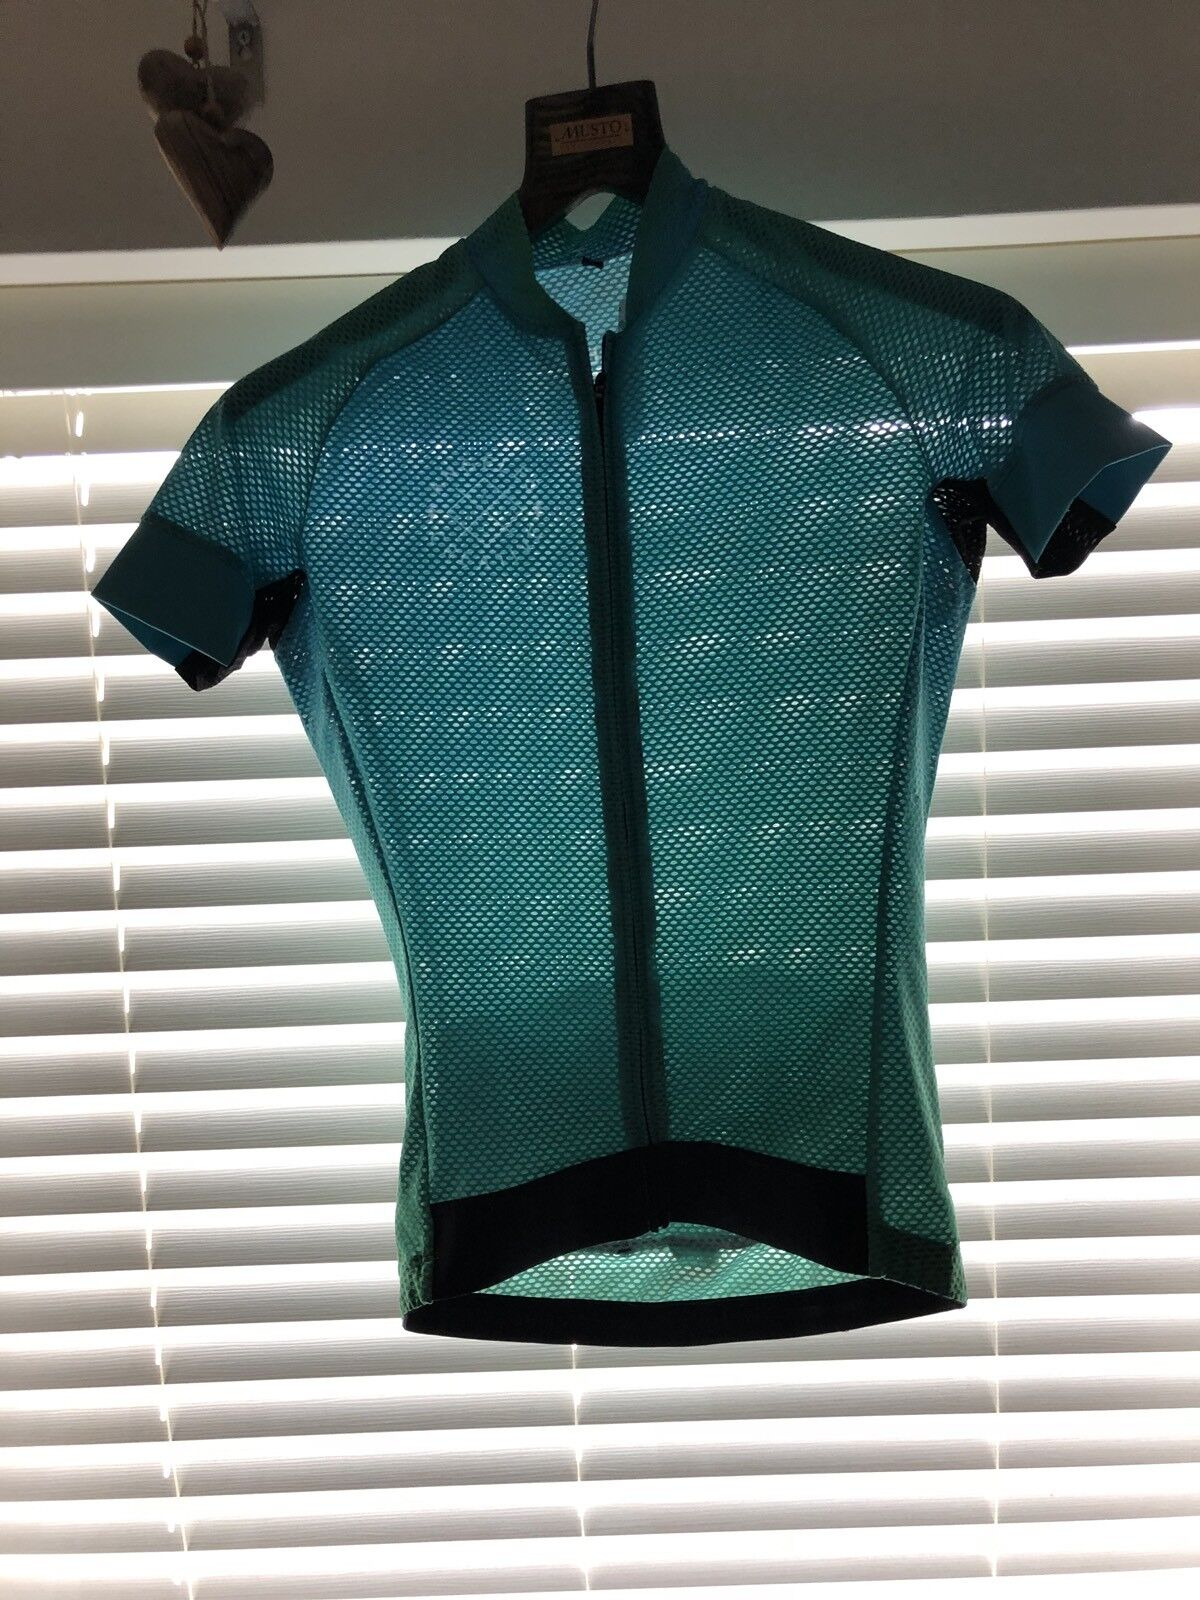 Women's Angeles  creative - Cycling Top - Large  first-class service